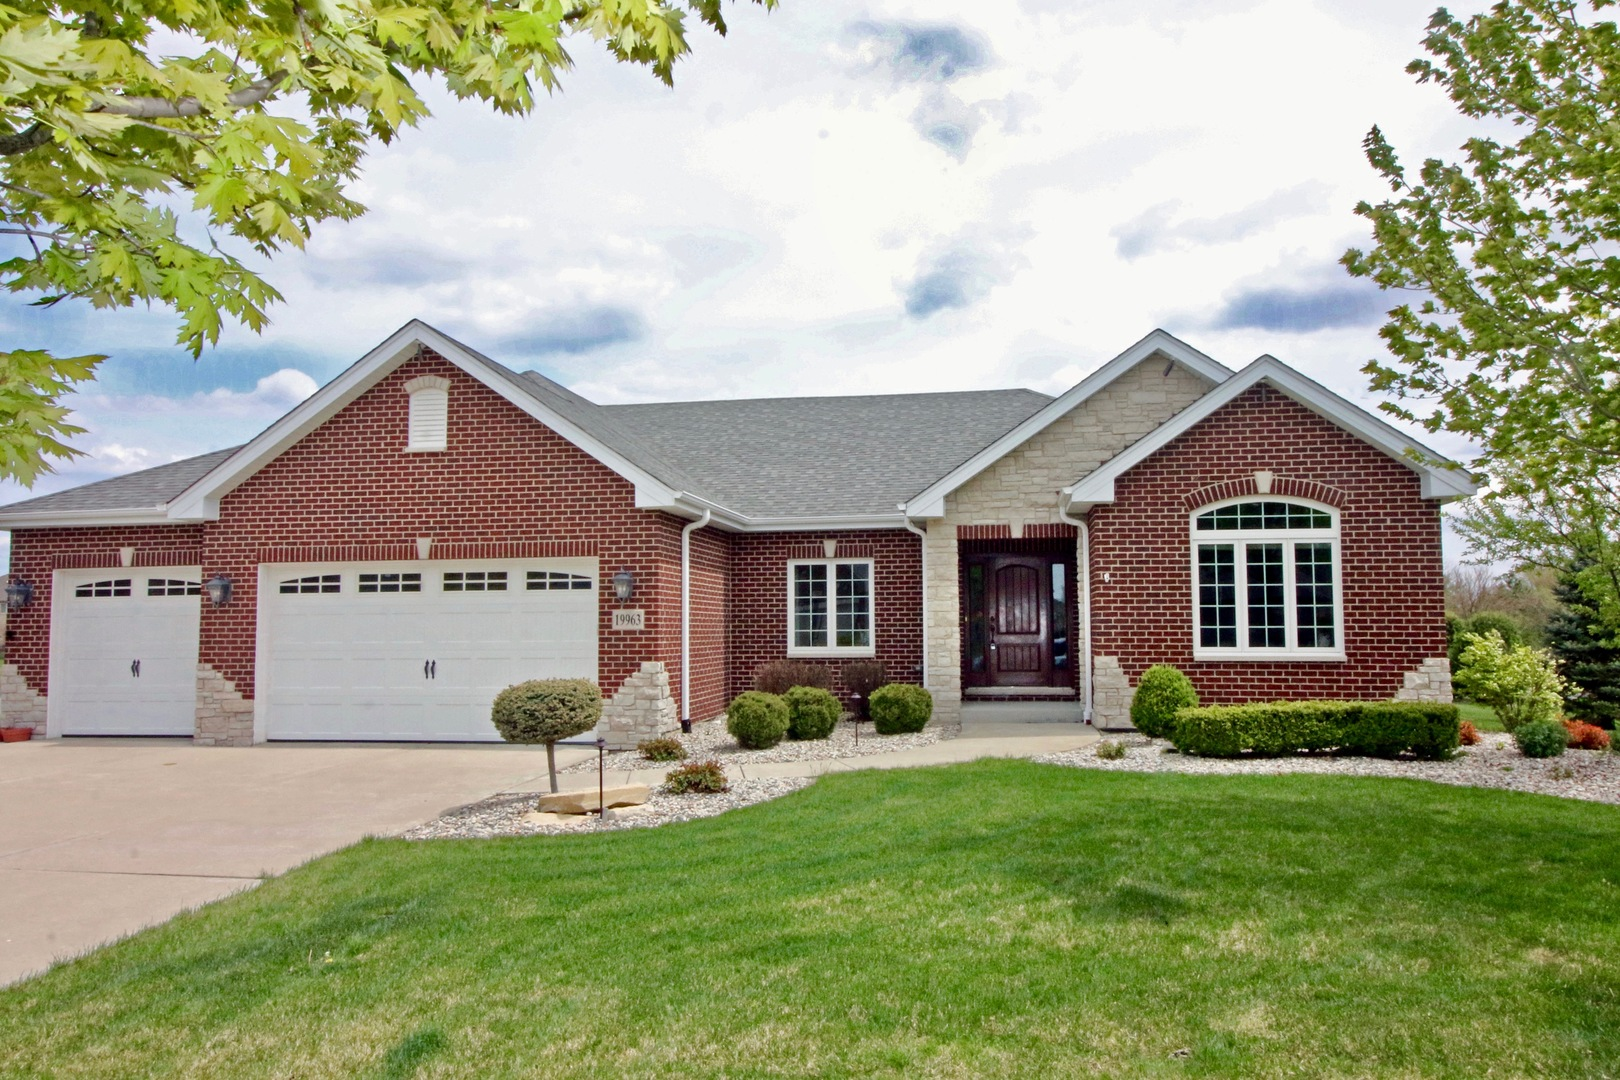 19963 Wildflower Drive, Frankfort in Will County, IL 60423 Home for Sale